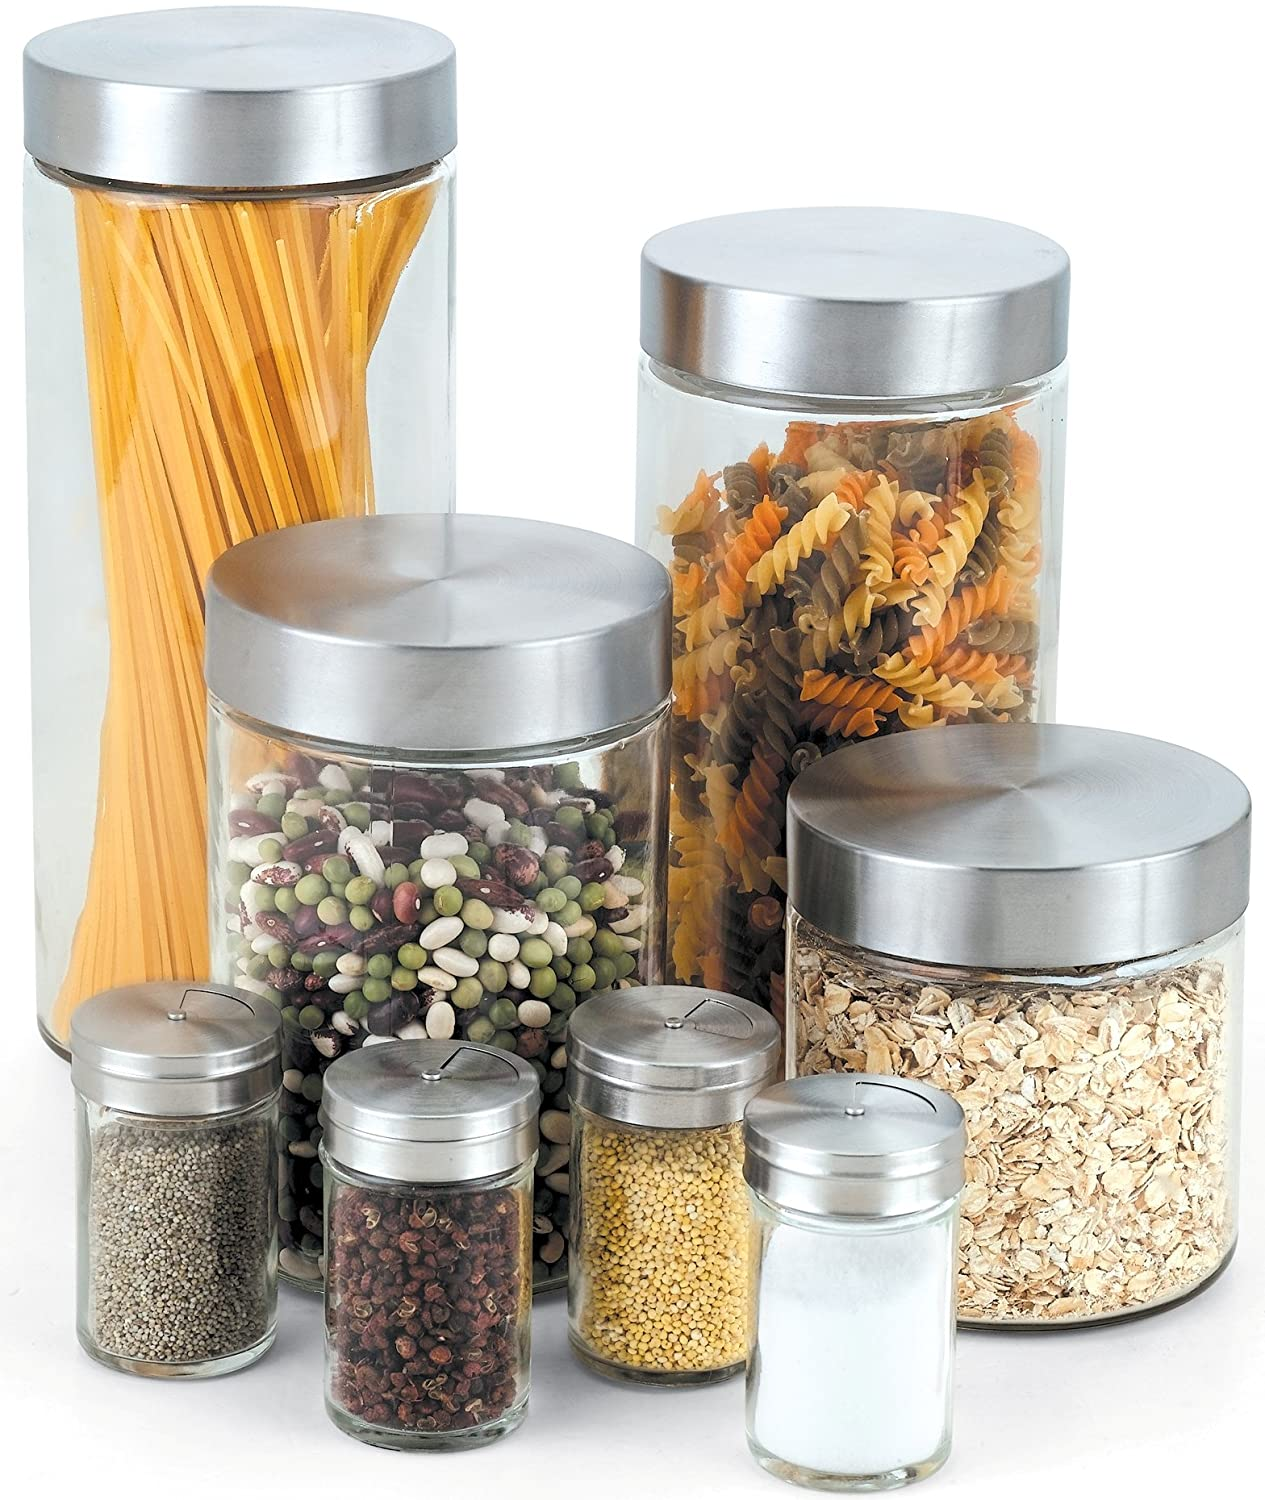 Cook N Home Glass Canister and Spice Jar Set, 8-Piece NC-00240